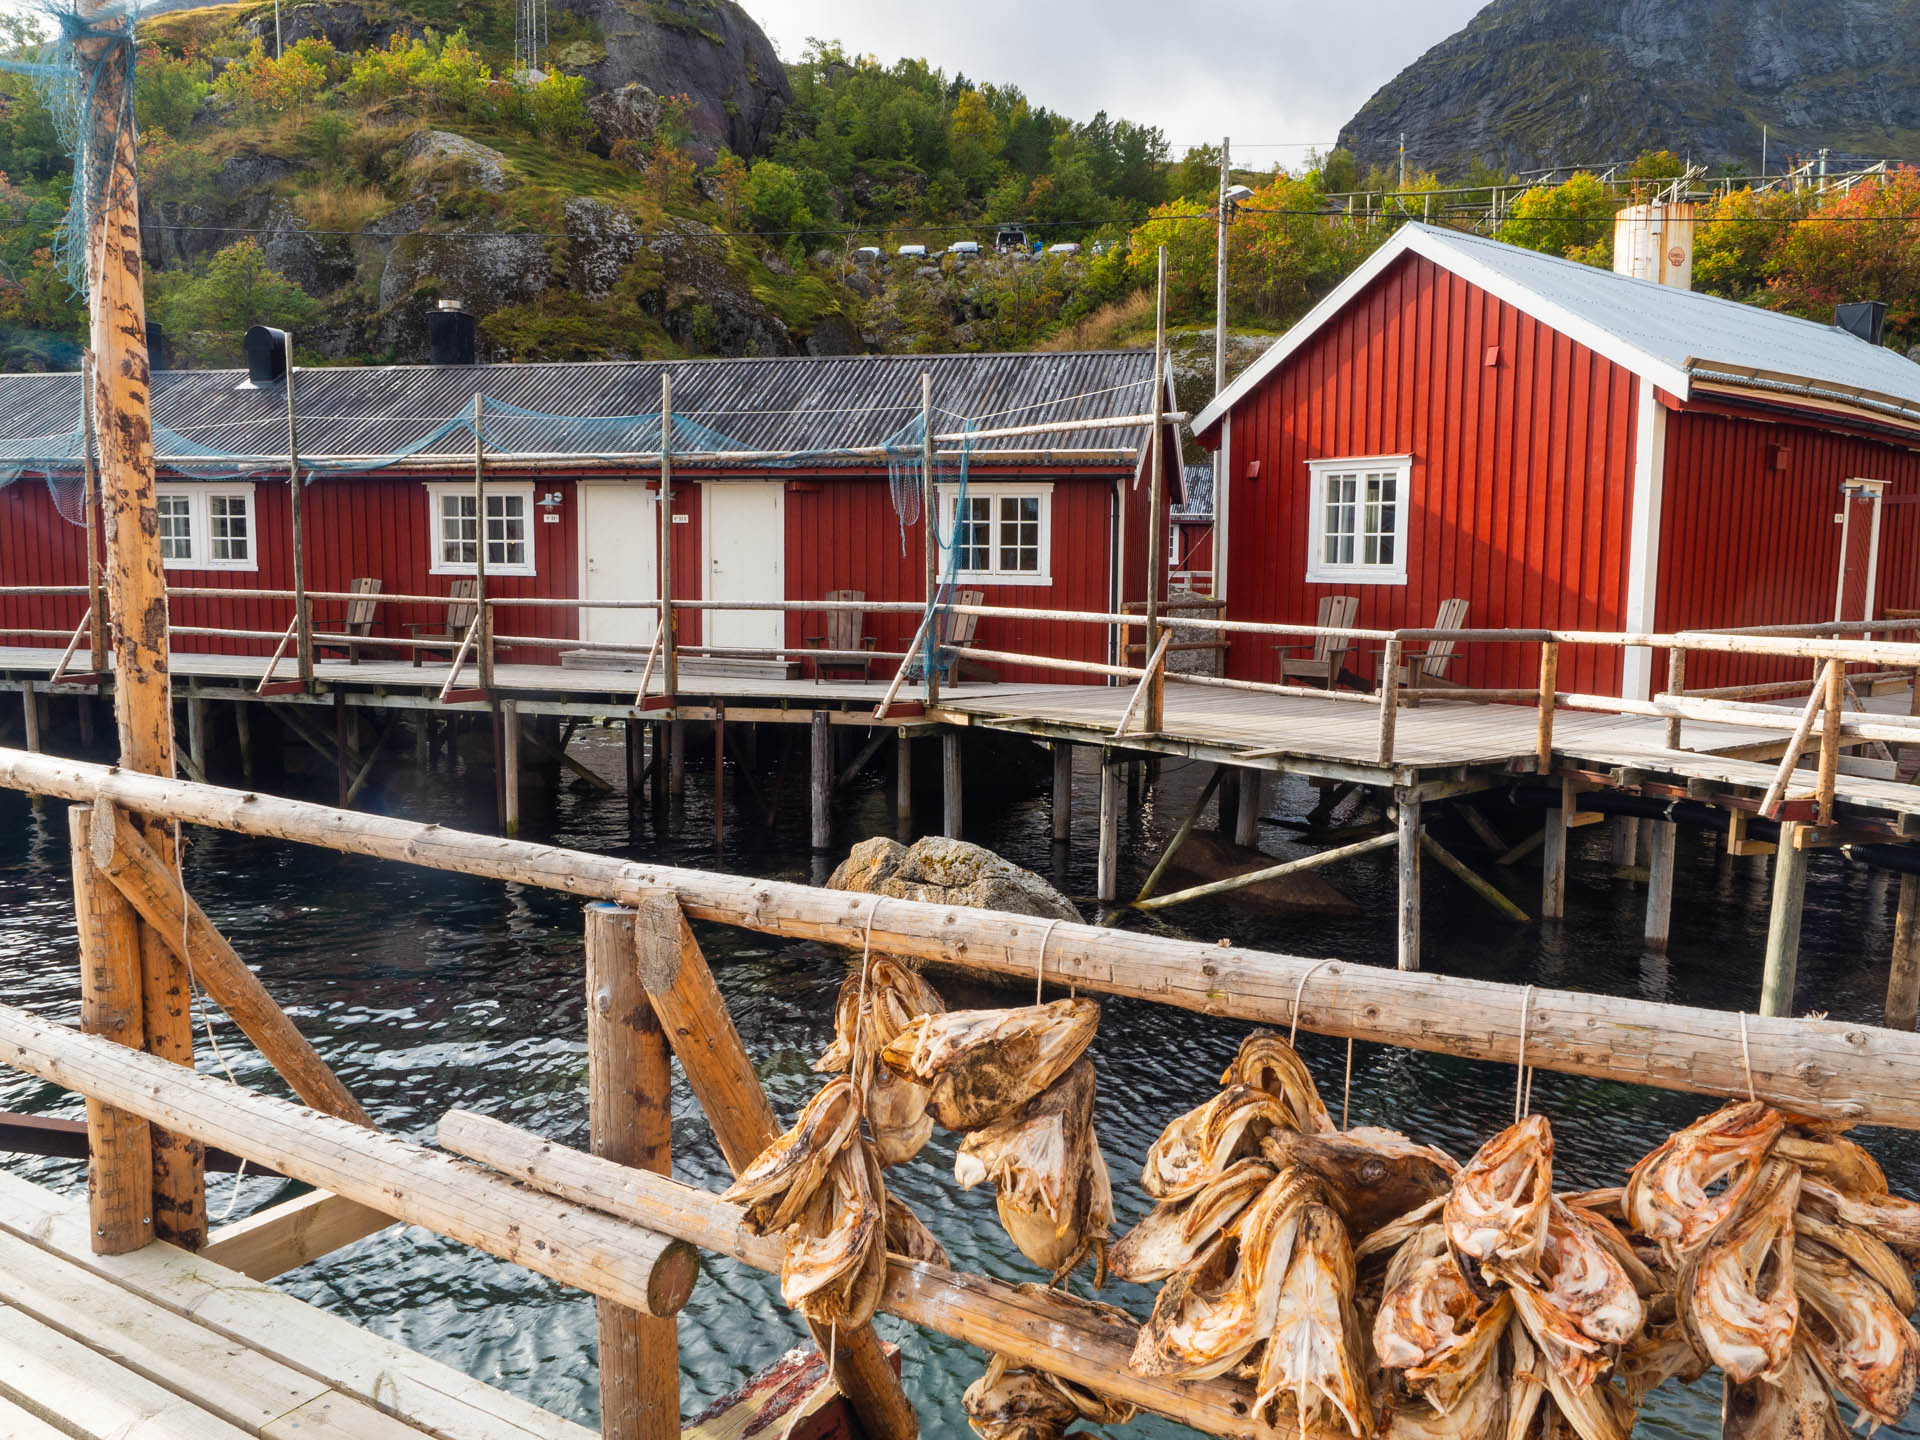 Nusfjord rorbuer (rowers' huts), now a typical form of accommodation on Lofoten